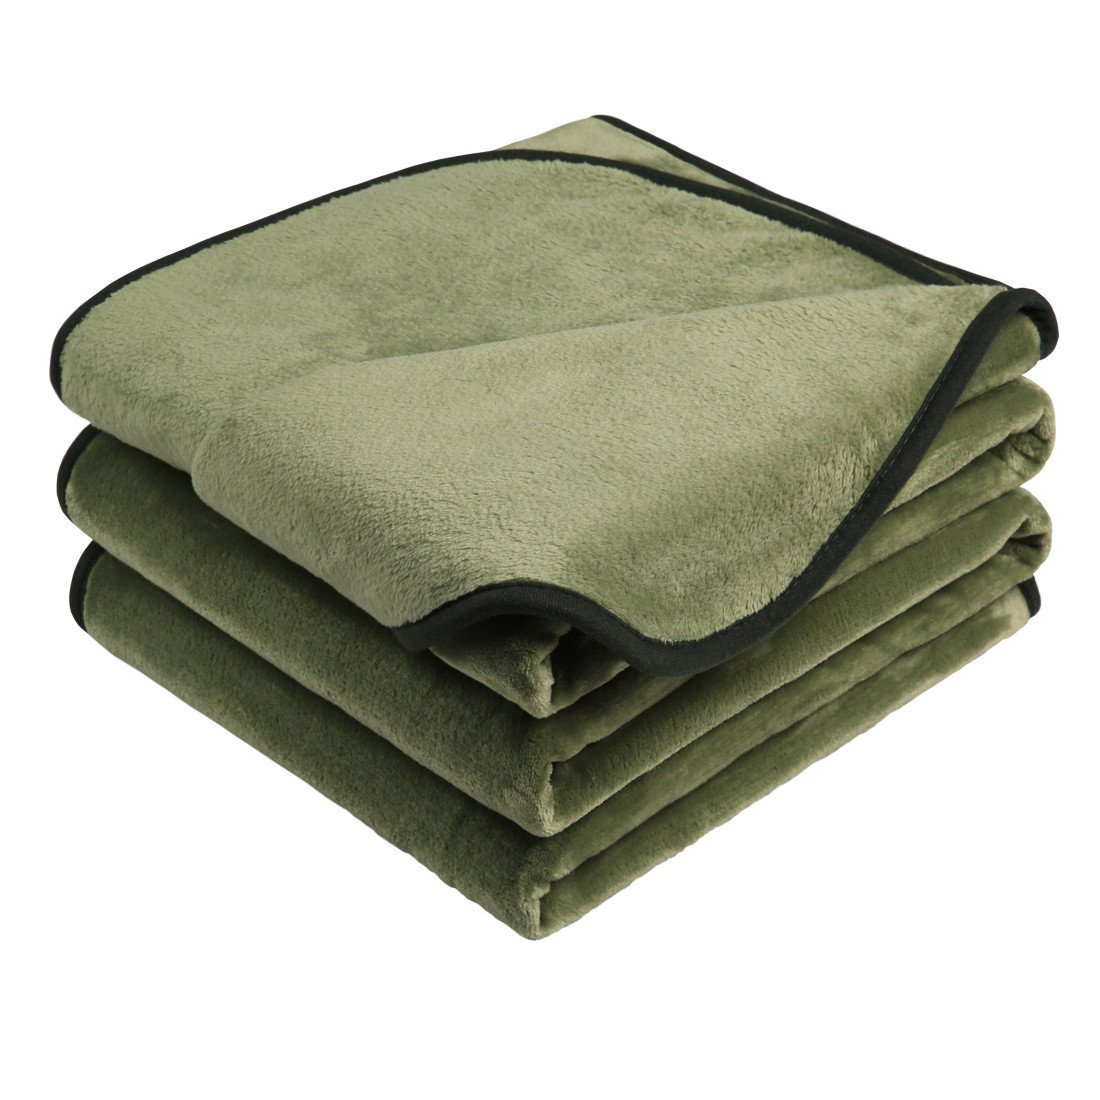 Emonia Luxury Fleece Blanket,330GSM ❤️ King Size Blankets Super Soft Warm Fuzzy Lightweight Bed & Couch Blanket(Olive Green,90 by 108 inch)